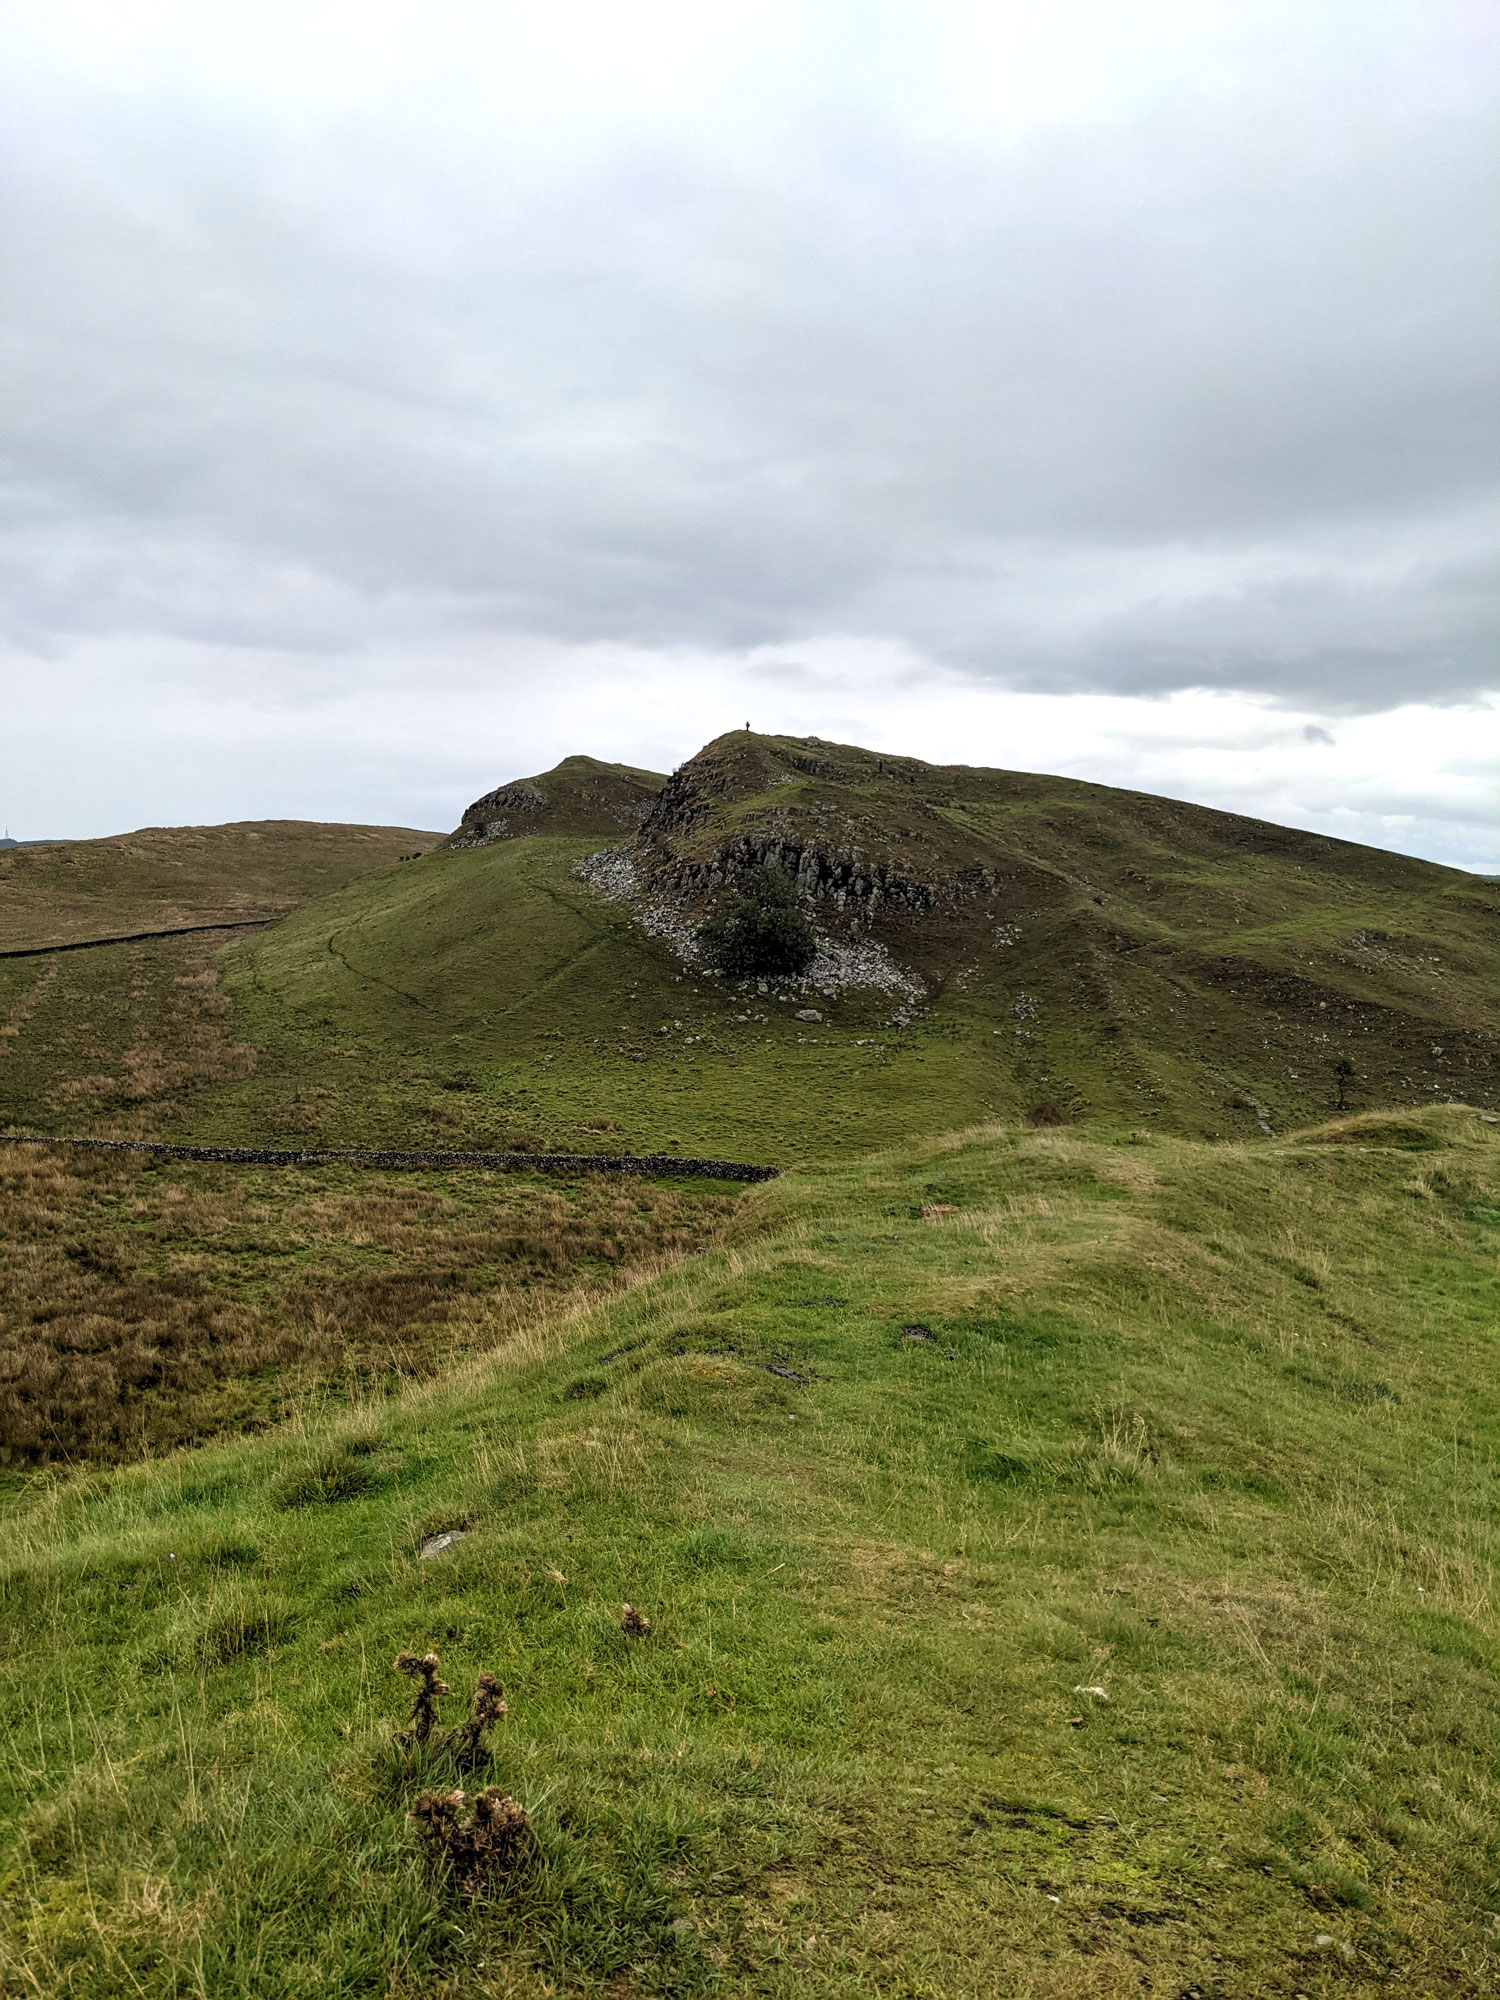 The 2nd Hill of Hadrian's Wal